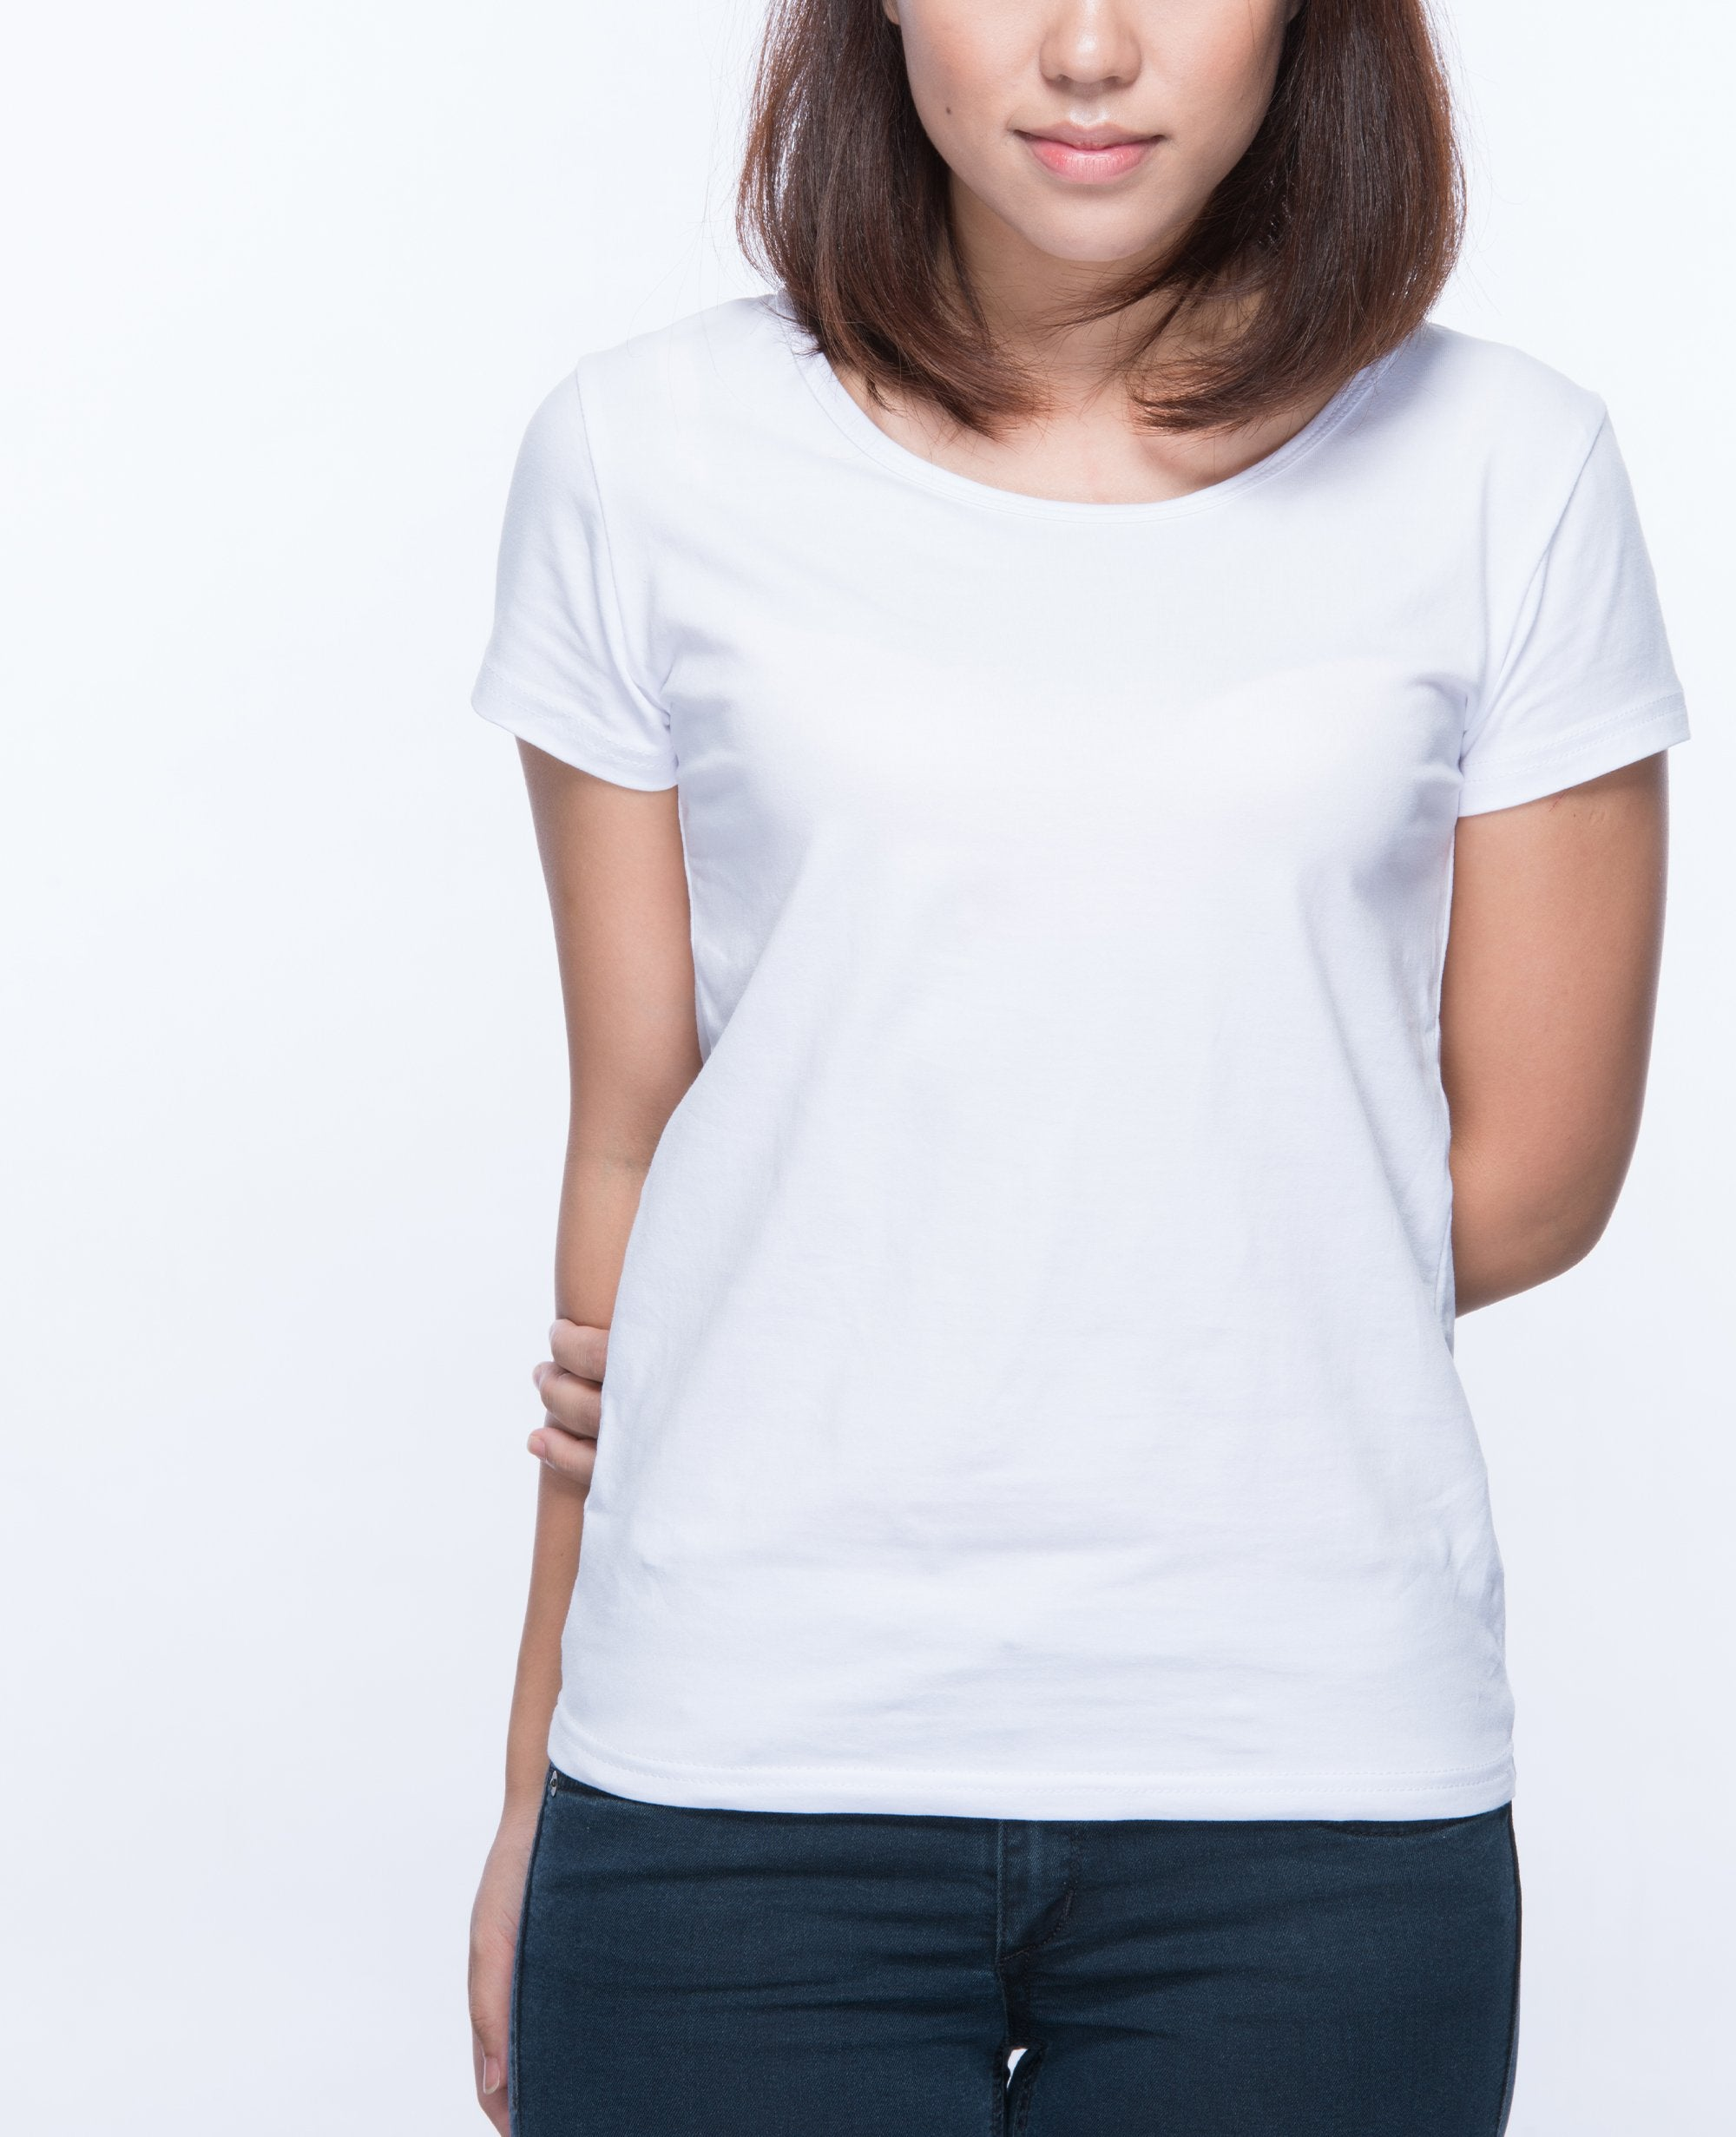 Slim fit T-shirt Women in White 5 pack - T-Shirts - BRANMA - BRANMA